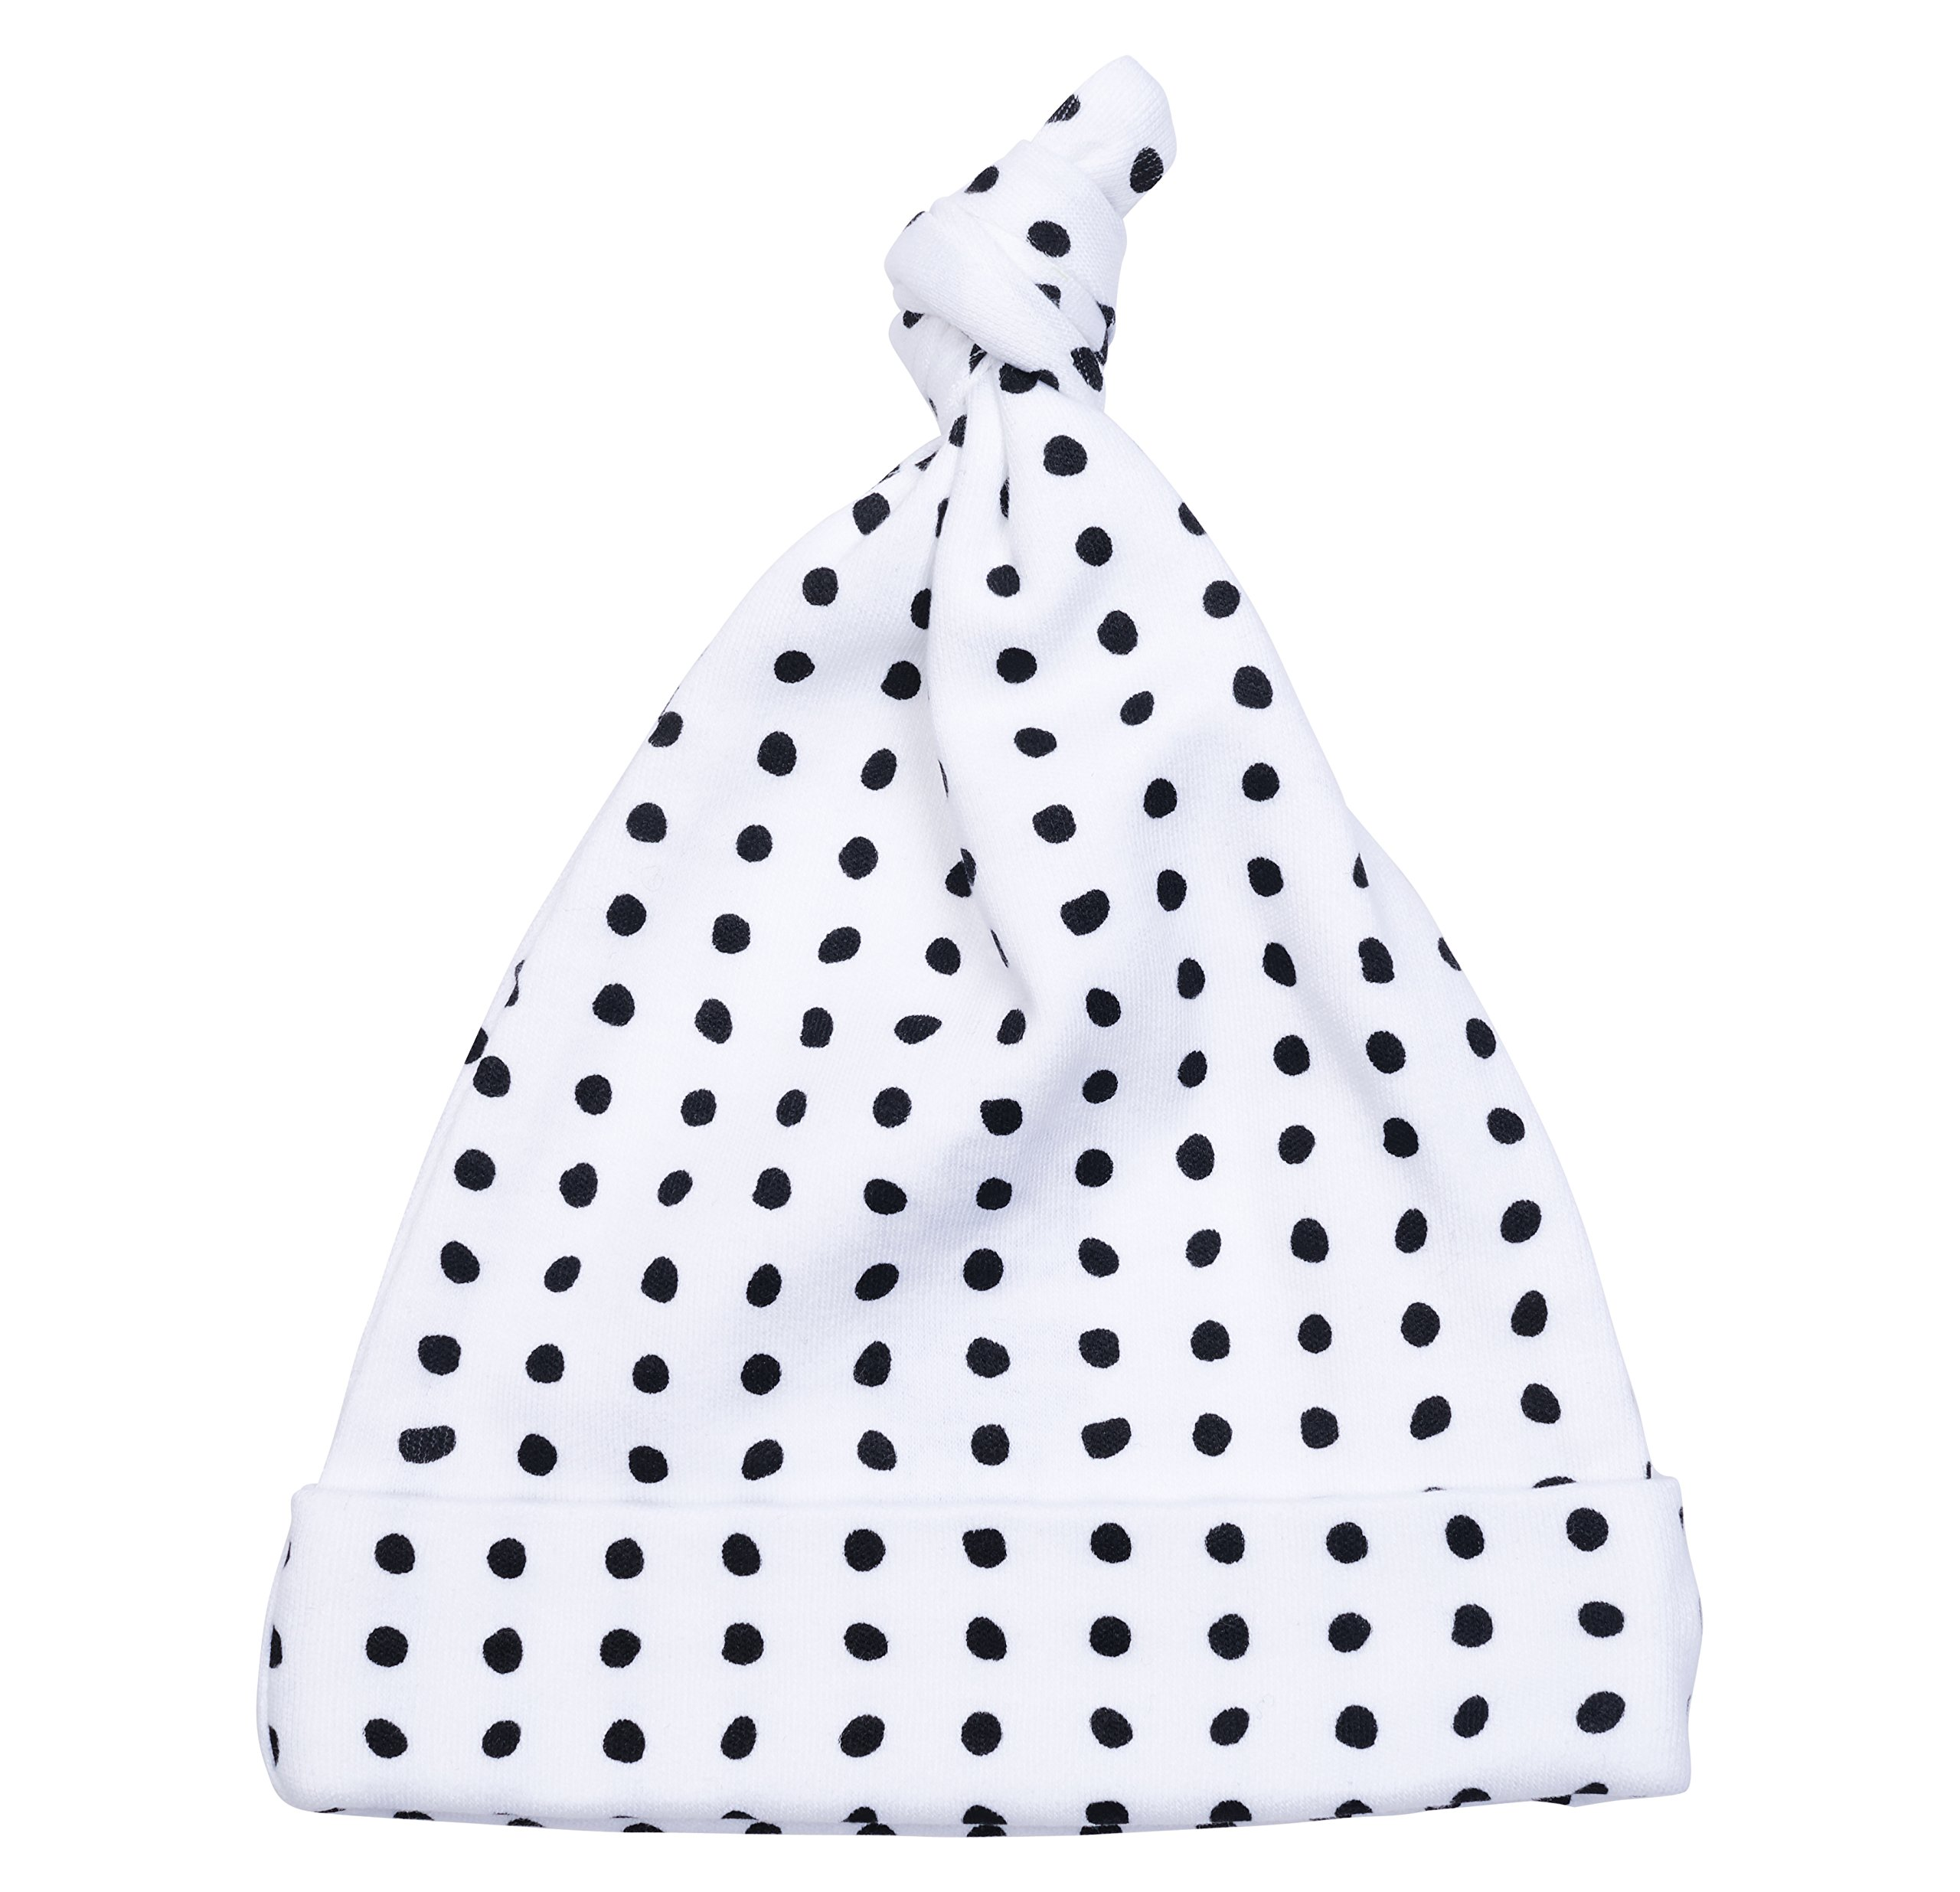 Cole + Cleo Unisex Baby Organic Cotton Knot Hat Soft Infant Cap Black and White